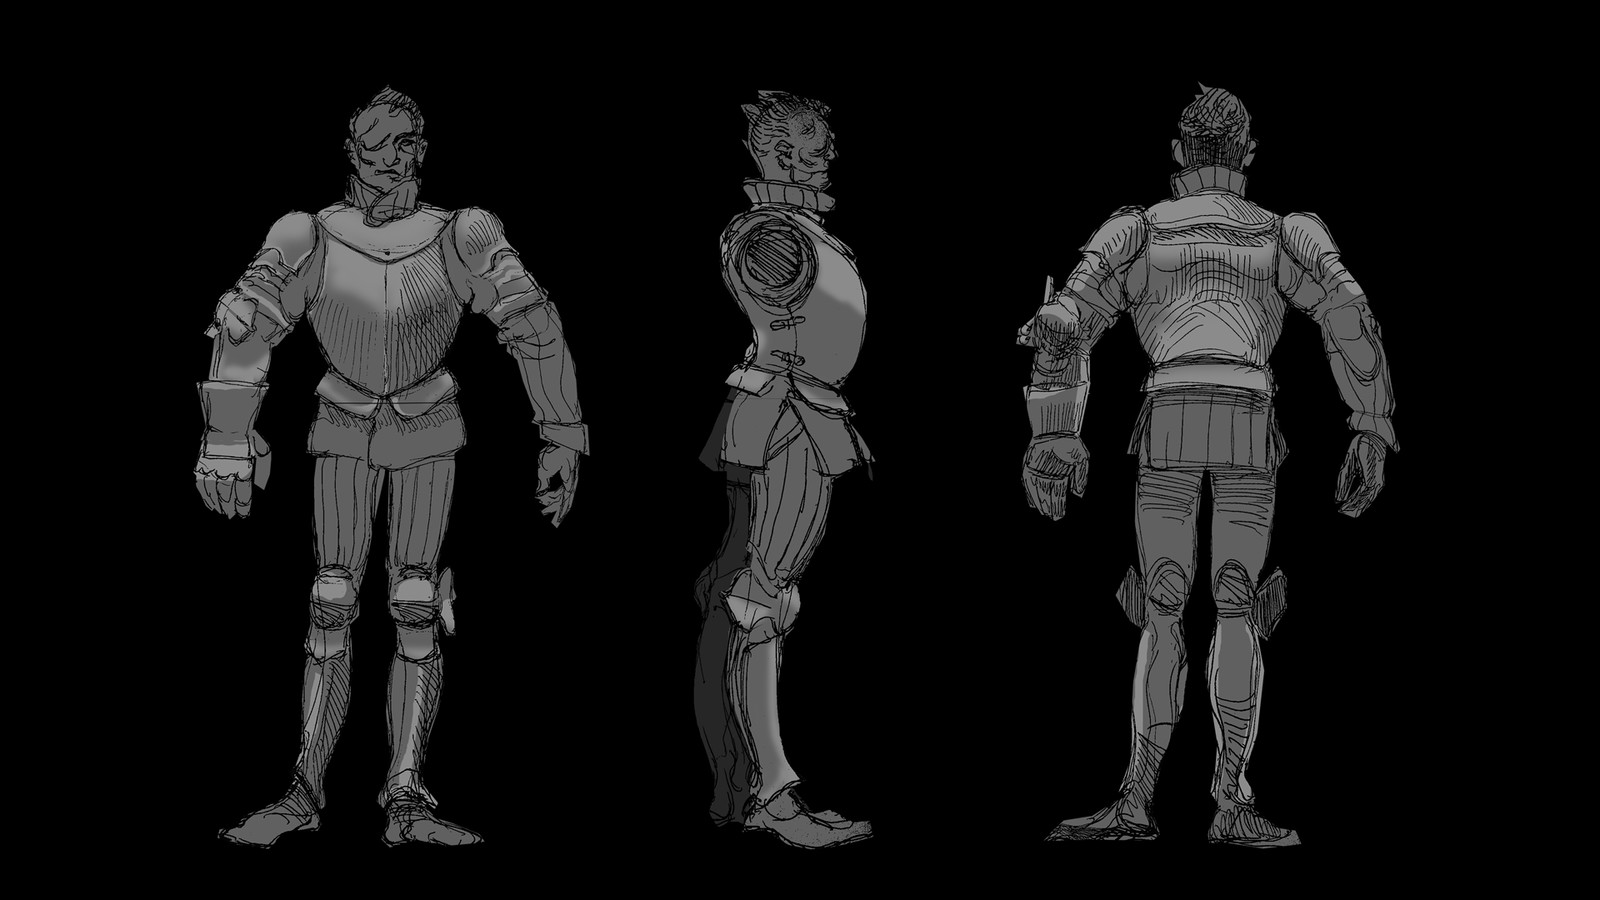 Sketches I used as guides for the modeling in Maya.